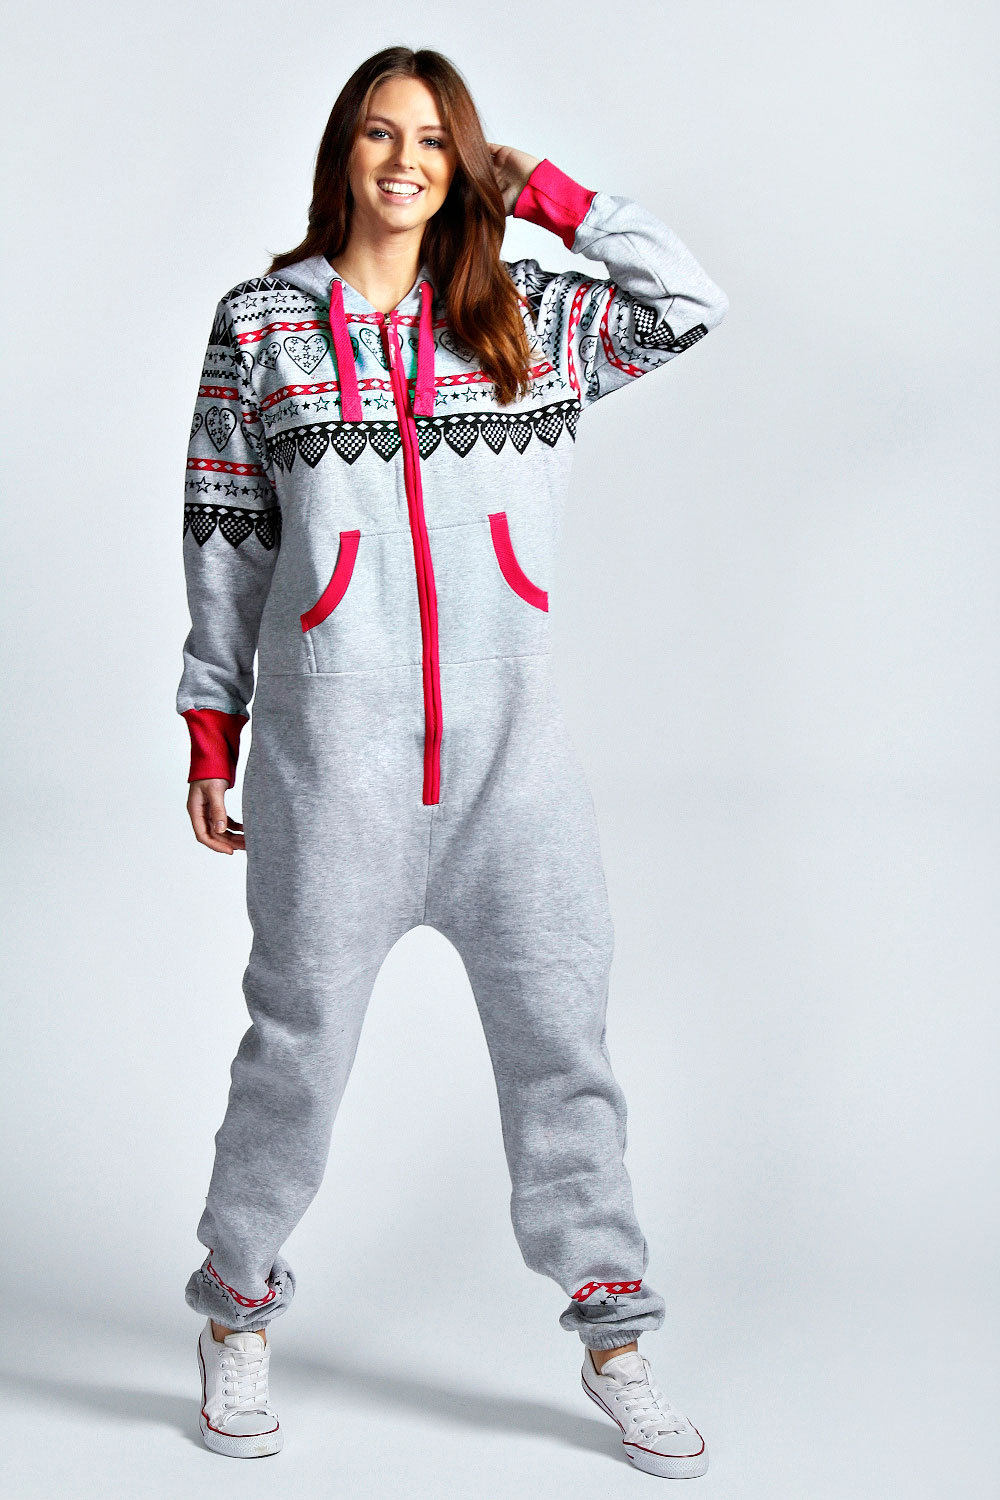 Women's Adult Onesie Pajamas. invalid category id. Women's Adult Onesie Pajamas. Showing 48 of results that match your query. Product - Katnap Women's Pink Bunny Hooded Footed One-Piece Pajamas. Product Image. Price $ Product Title. Katnap Women's Pink Bunny Hooded Footed One-Piece Pajamas.